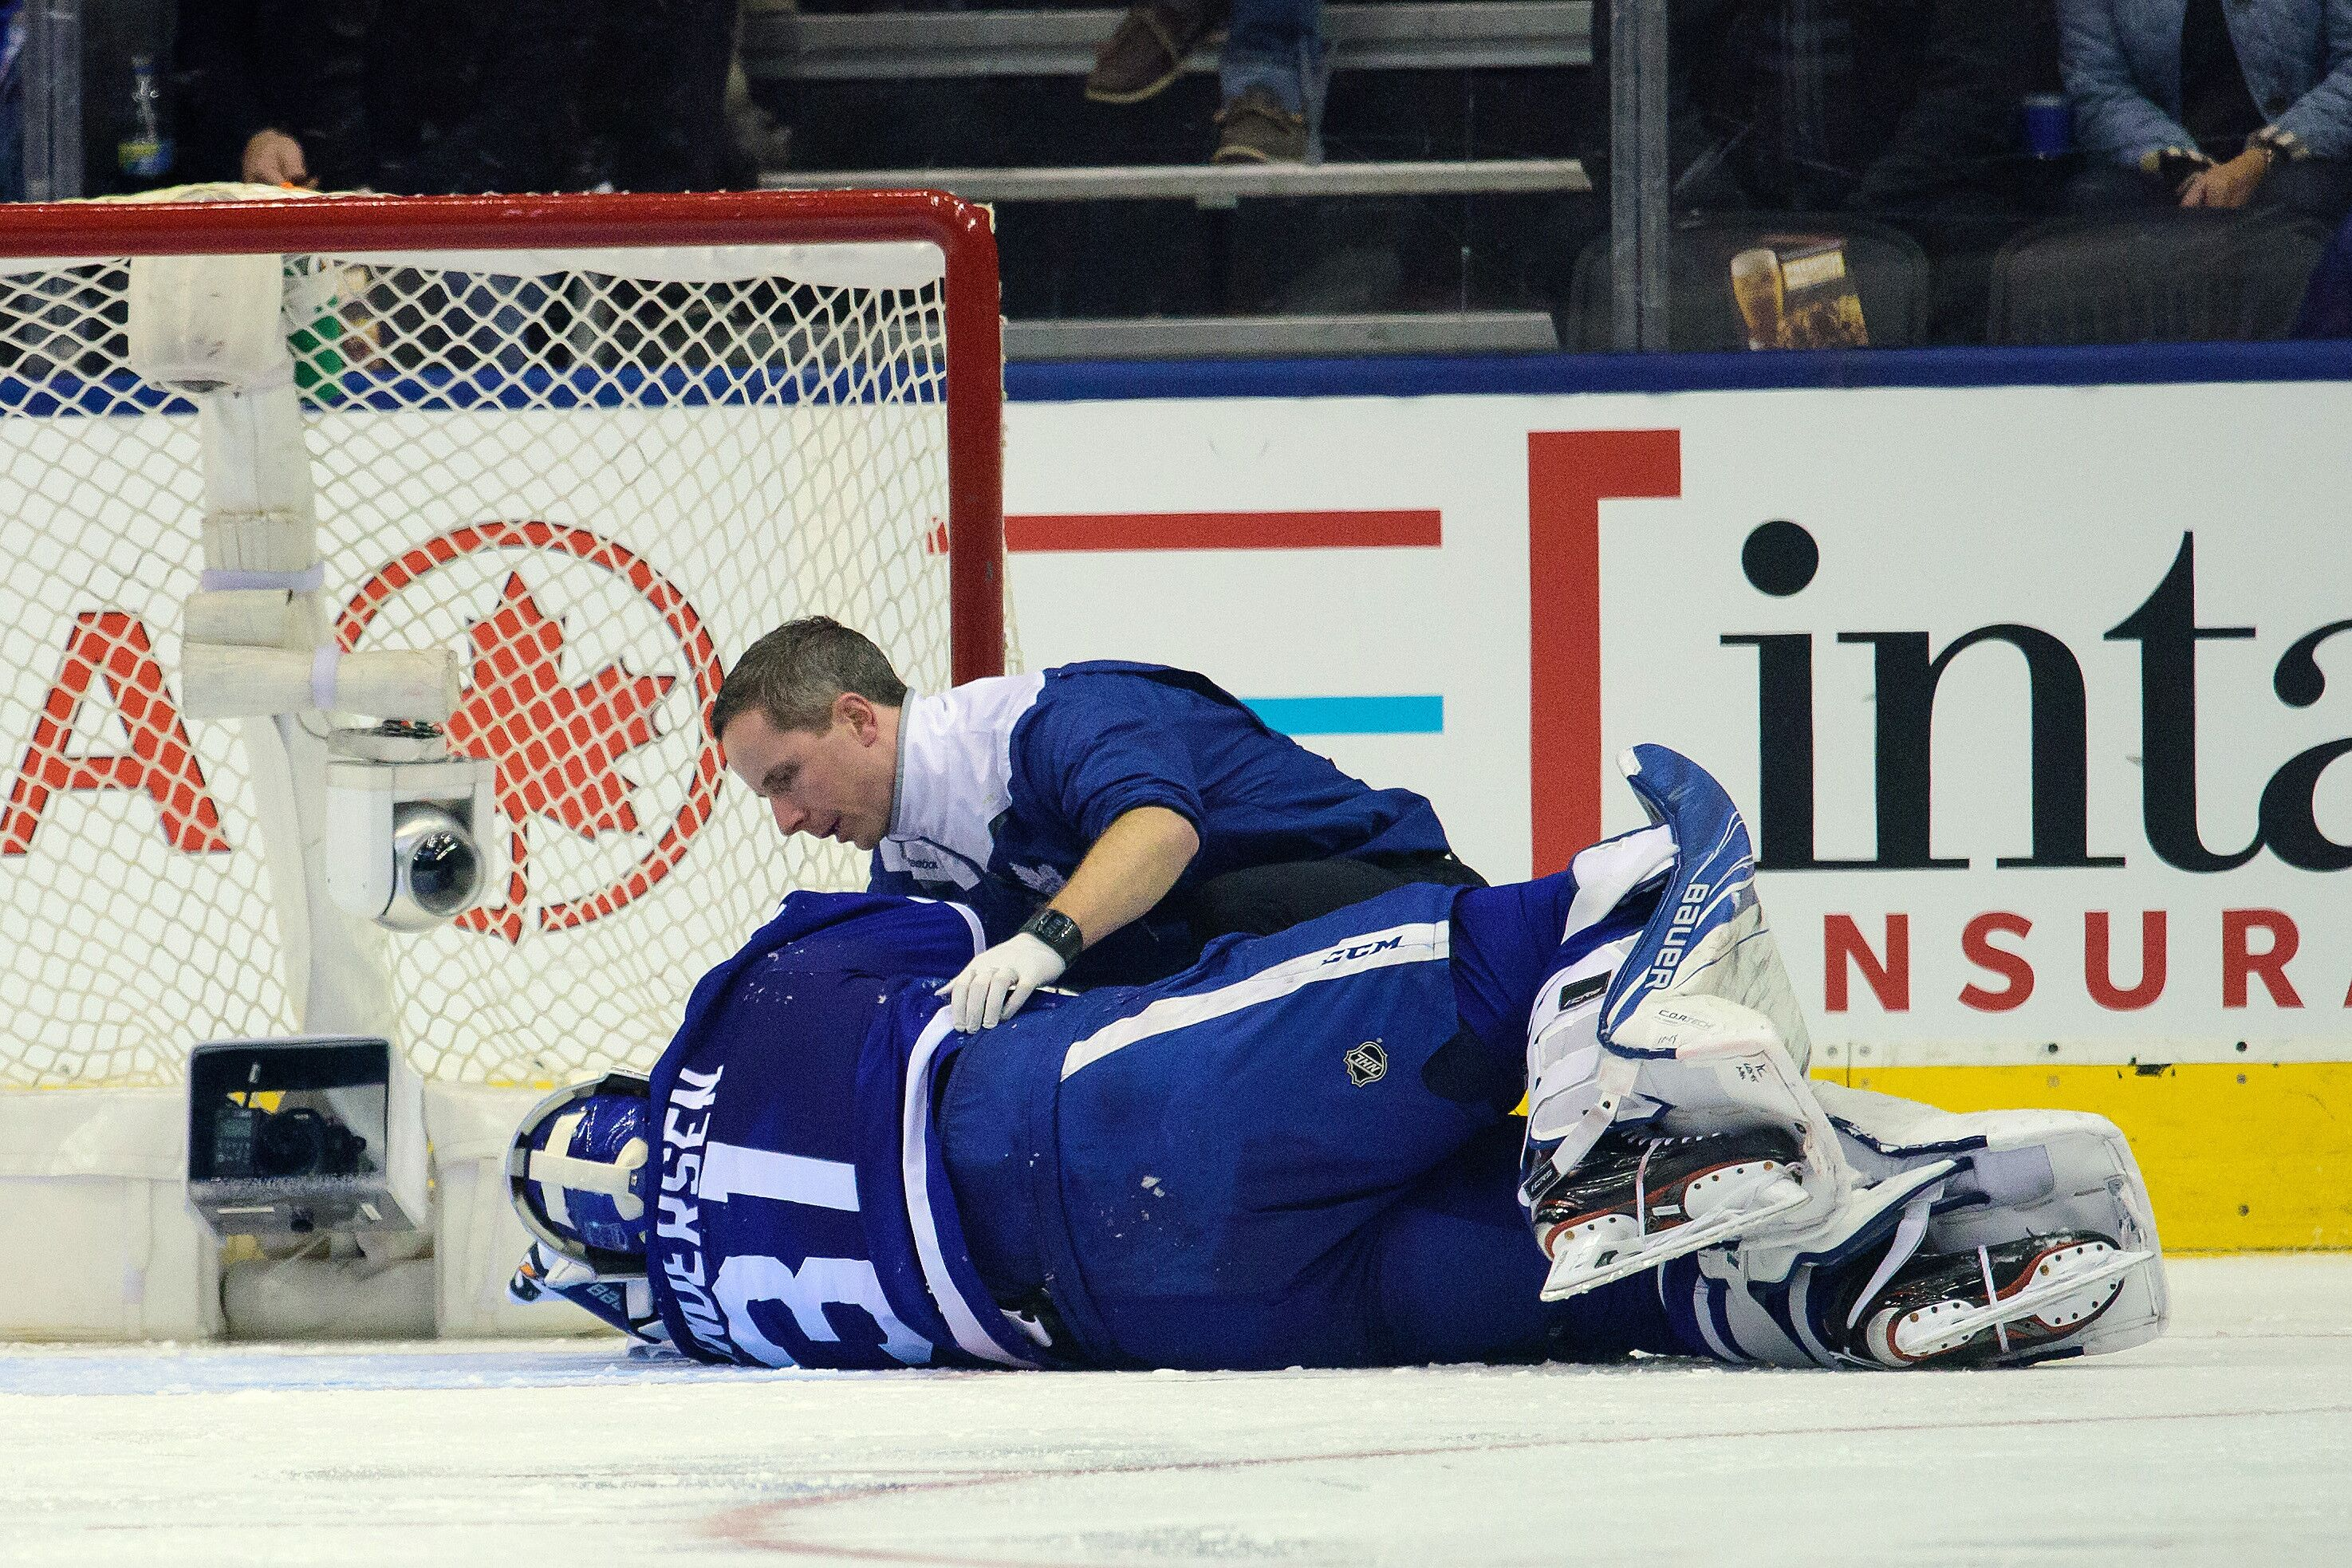 Toronto Maple Leafs: Questioning the Focus of Load Management